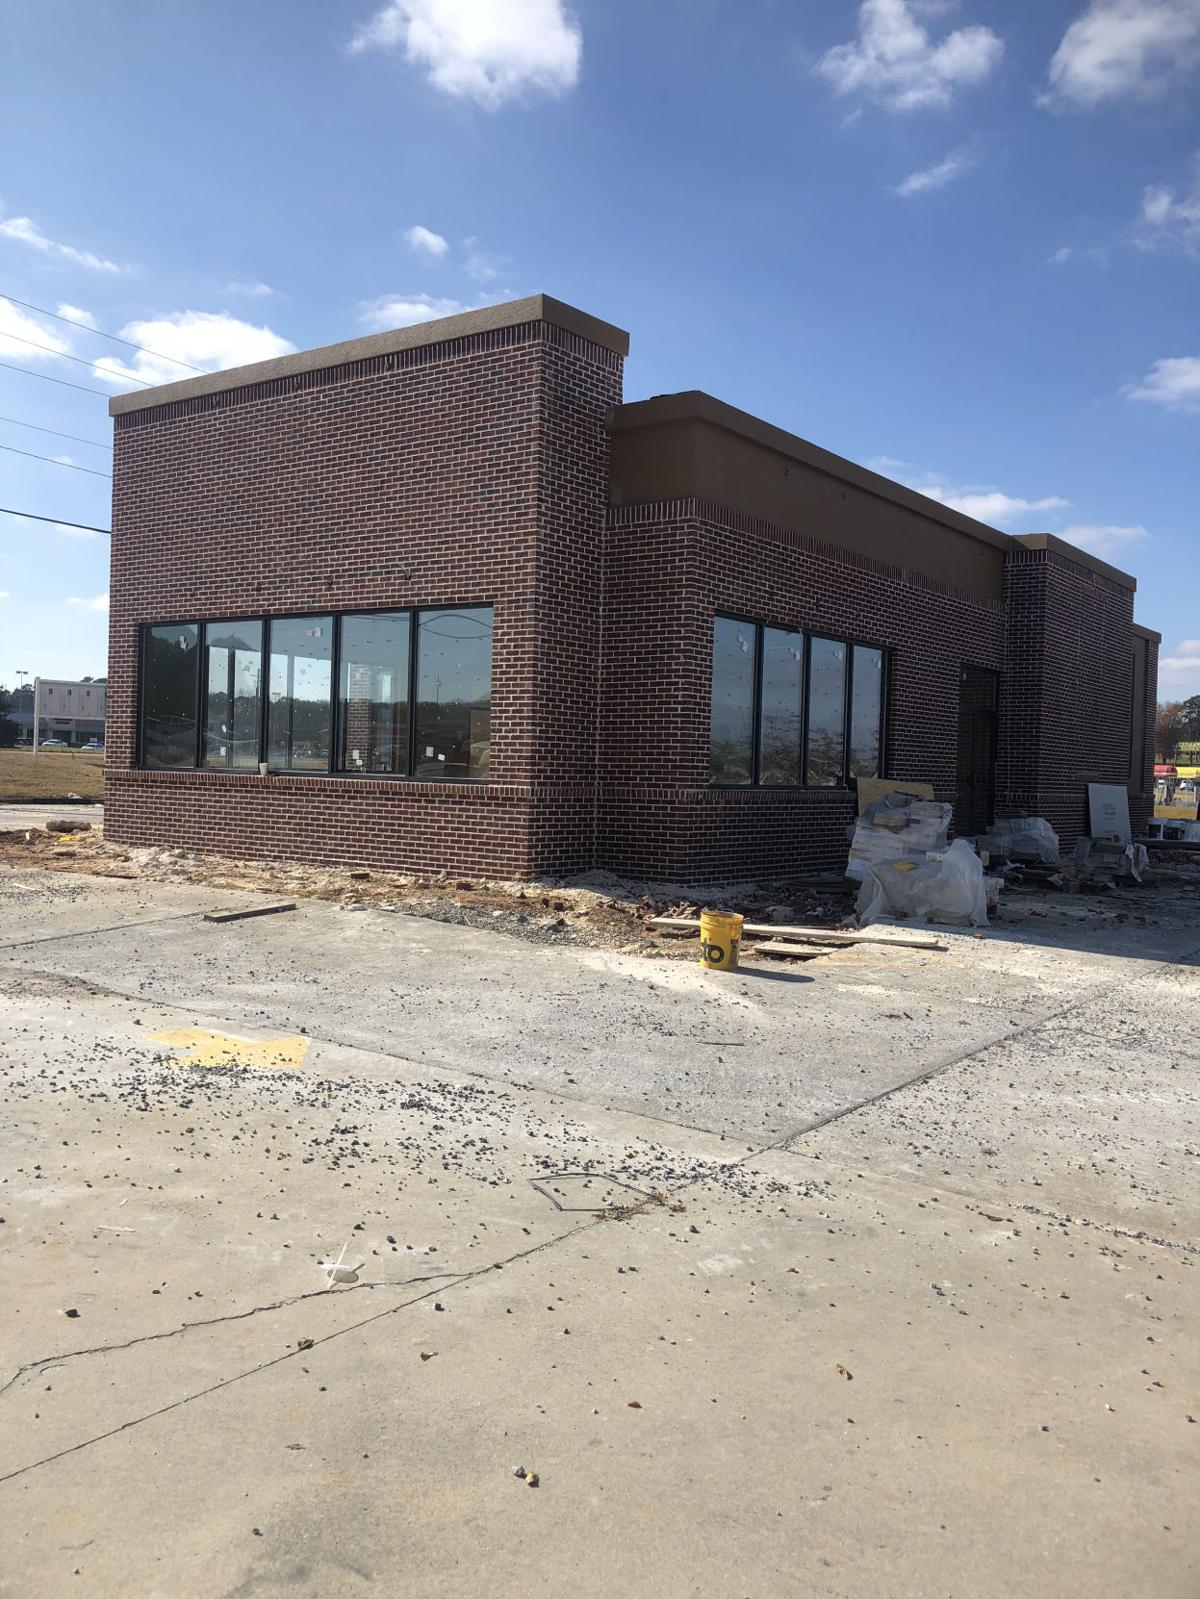 Popeye's Chicken construction continues in Rockmart